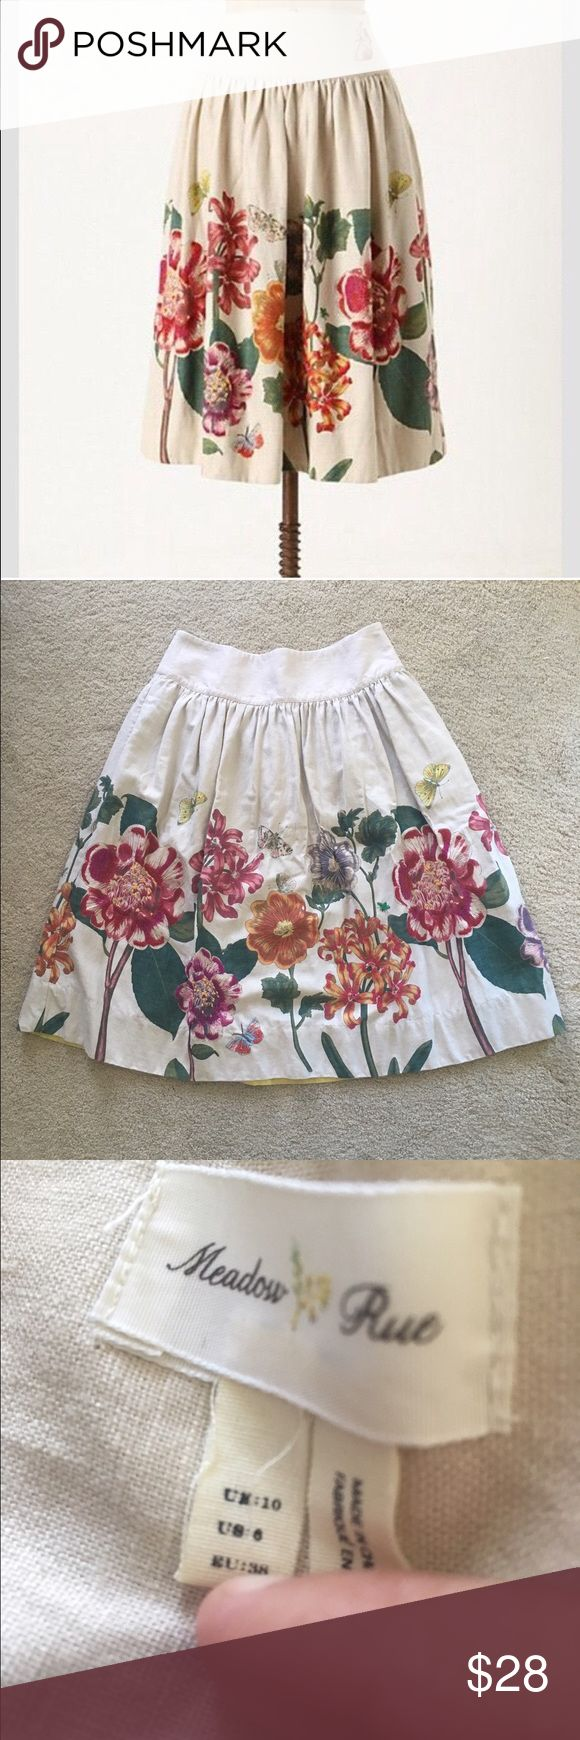 Anthropologie Last Blooming Skirt, 6, Meadow Rue This is the Last Blooming Skirt from Anthropologie, by Meadow Rue. Size 6, in excellent condition. This is a re-posh (I should have bought a 4). Anthropologie Skirts A-Line or Full